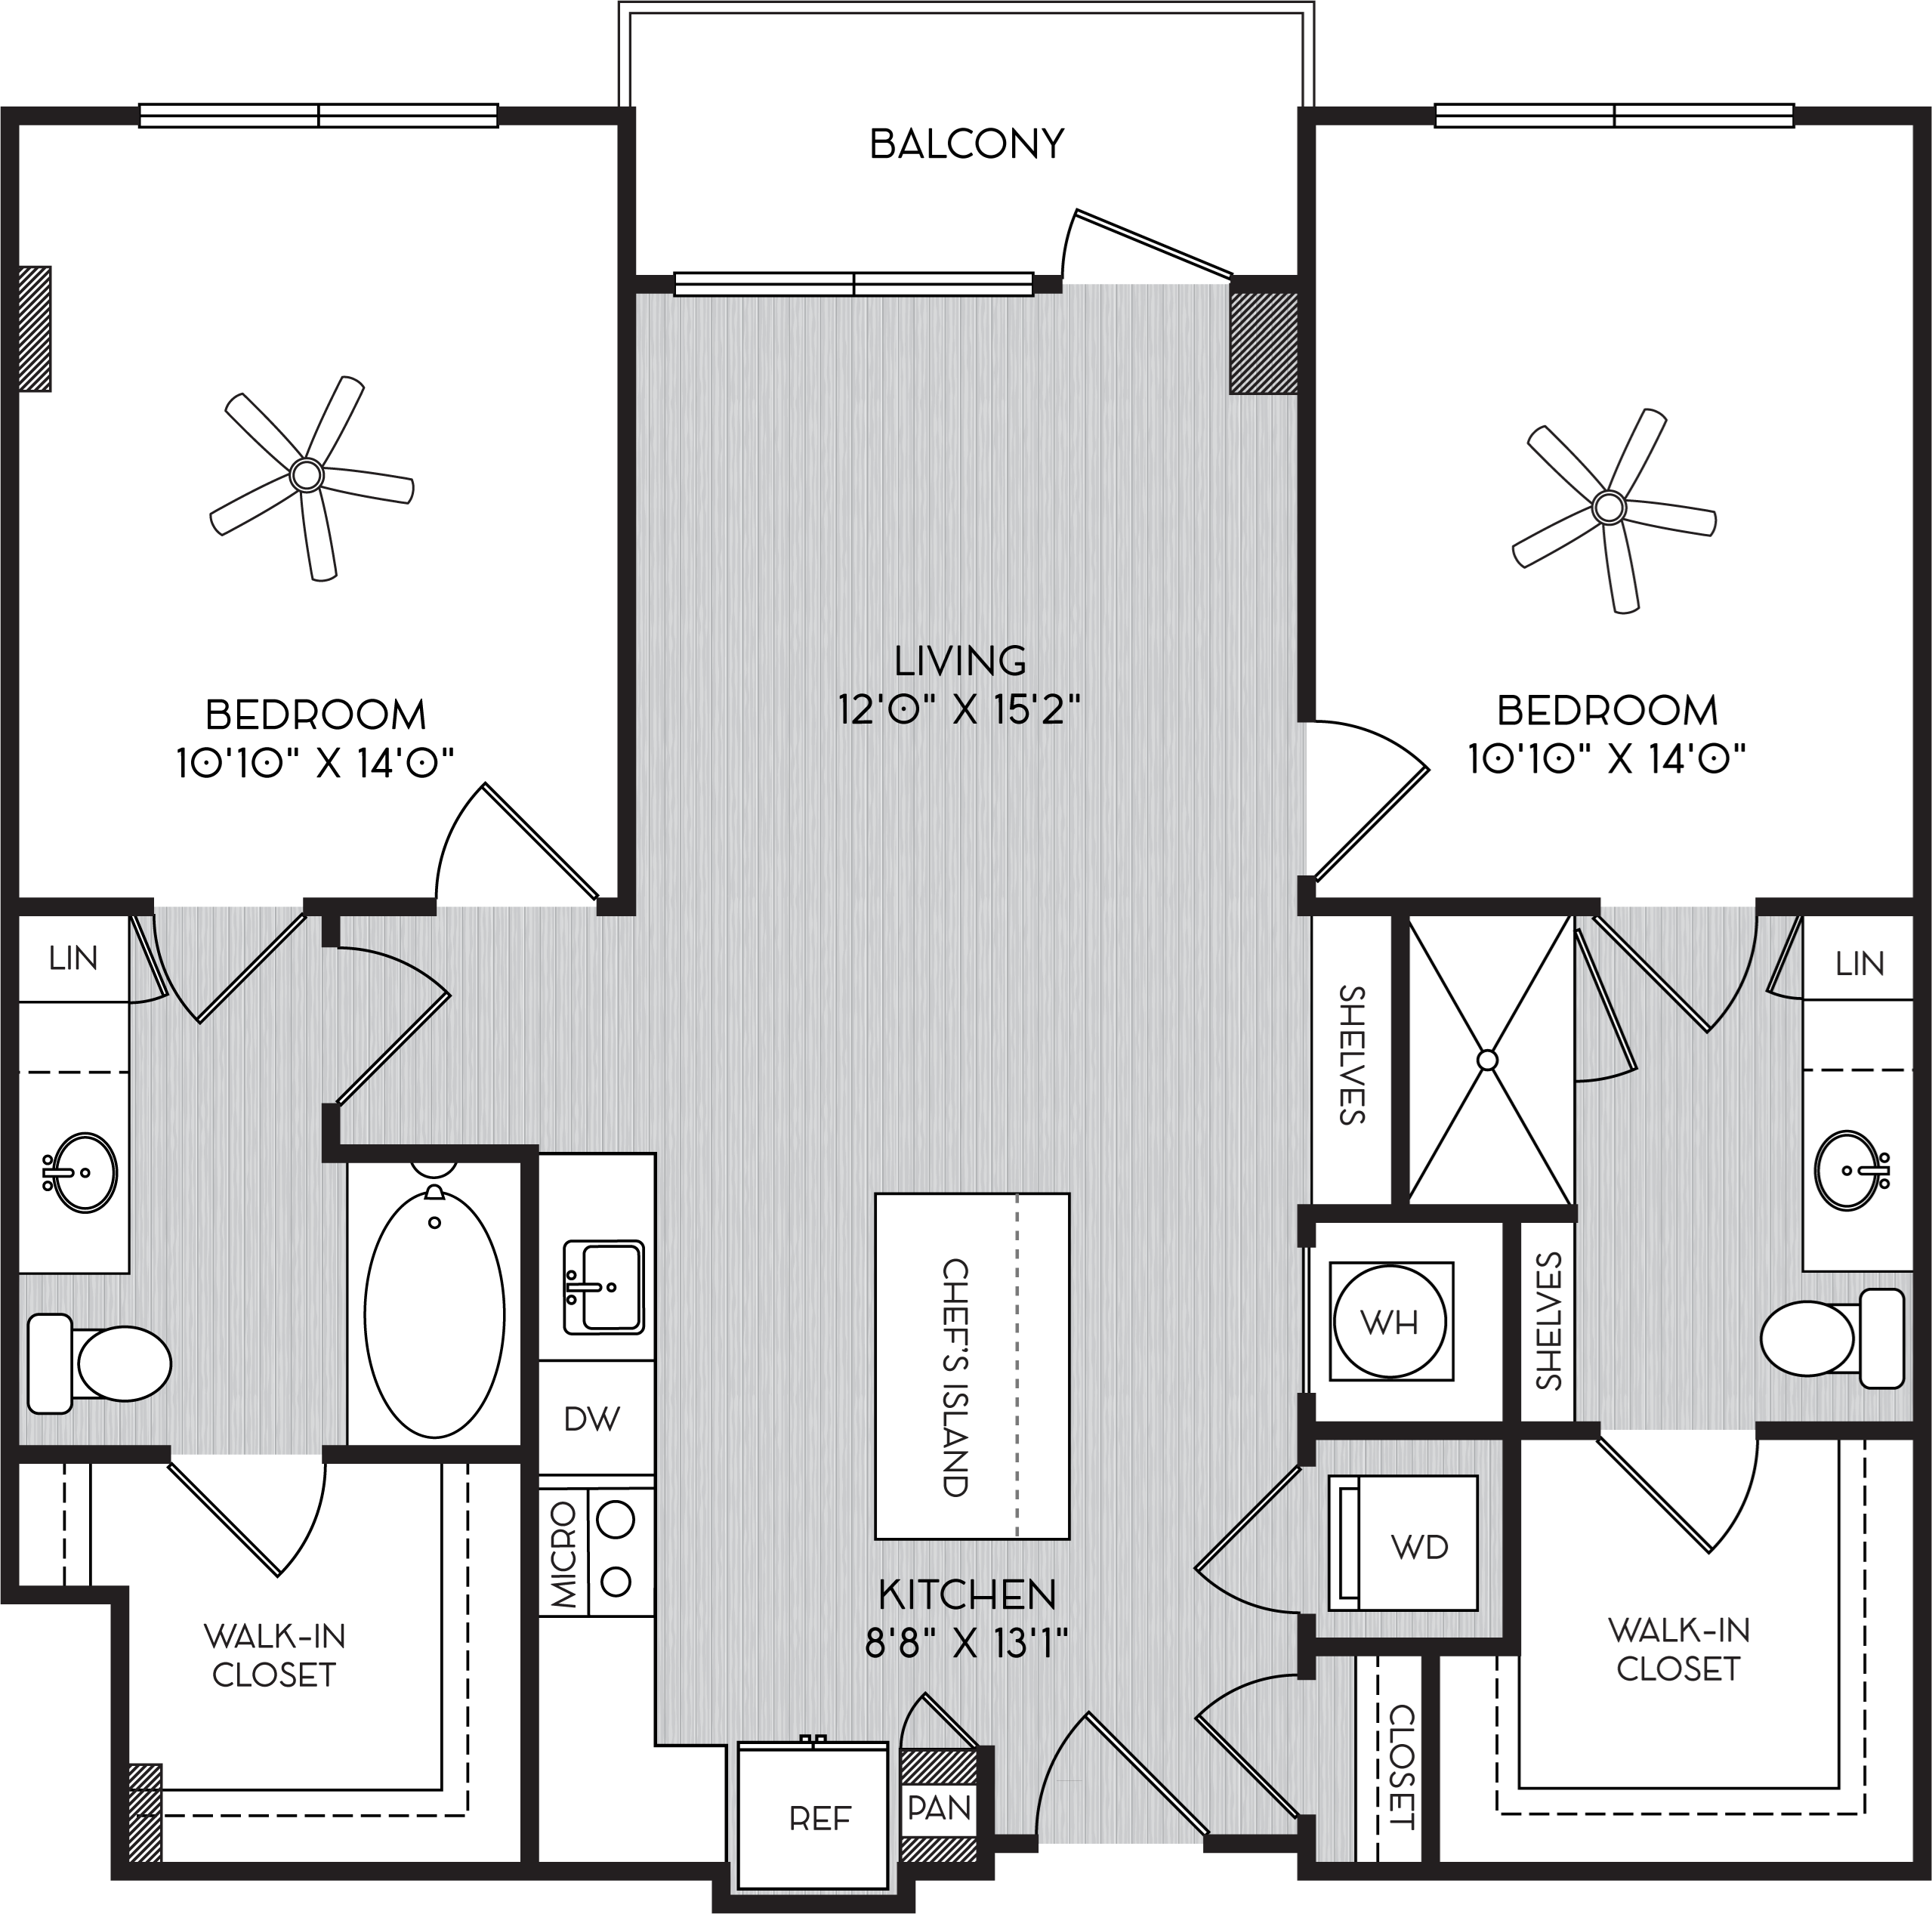 B4 Two Bedroom Floor Plan with Balcony at Apartments in Vinings